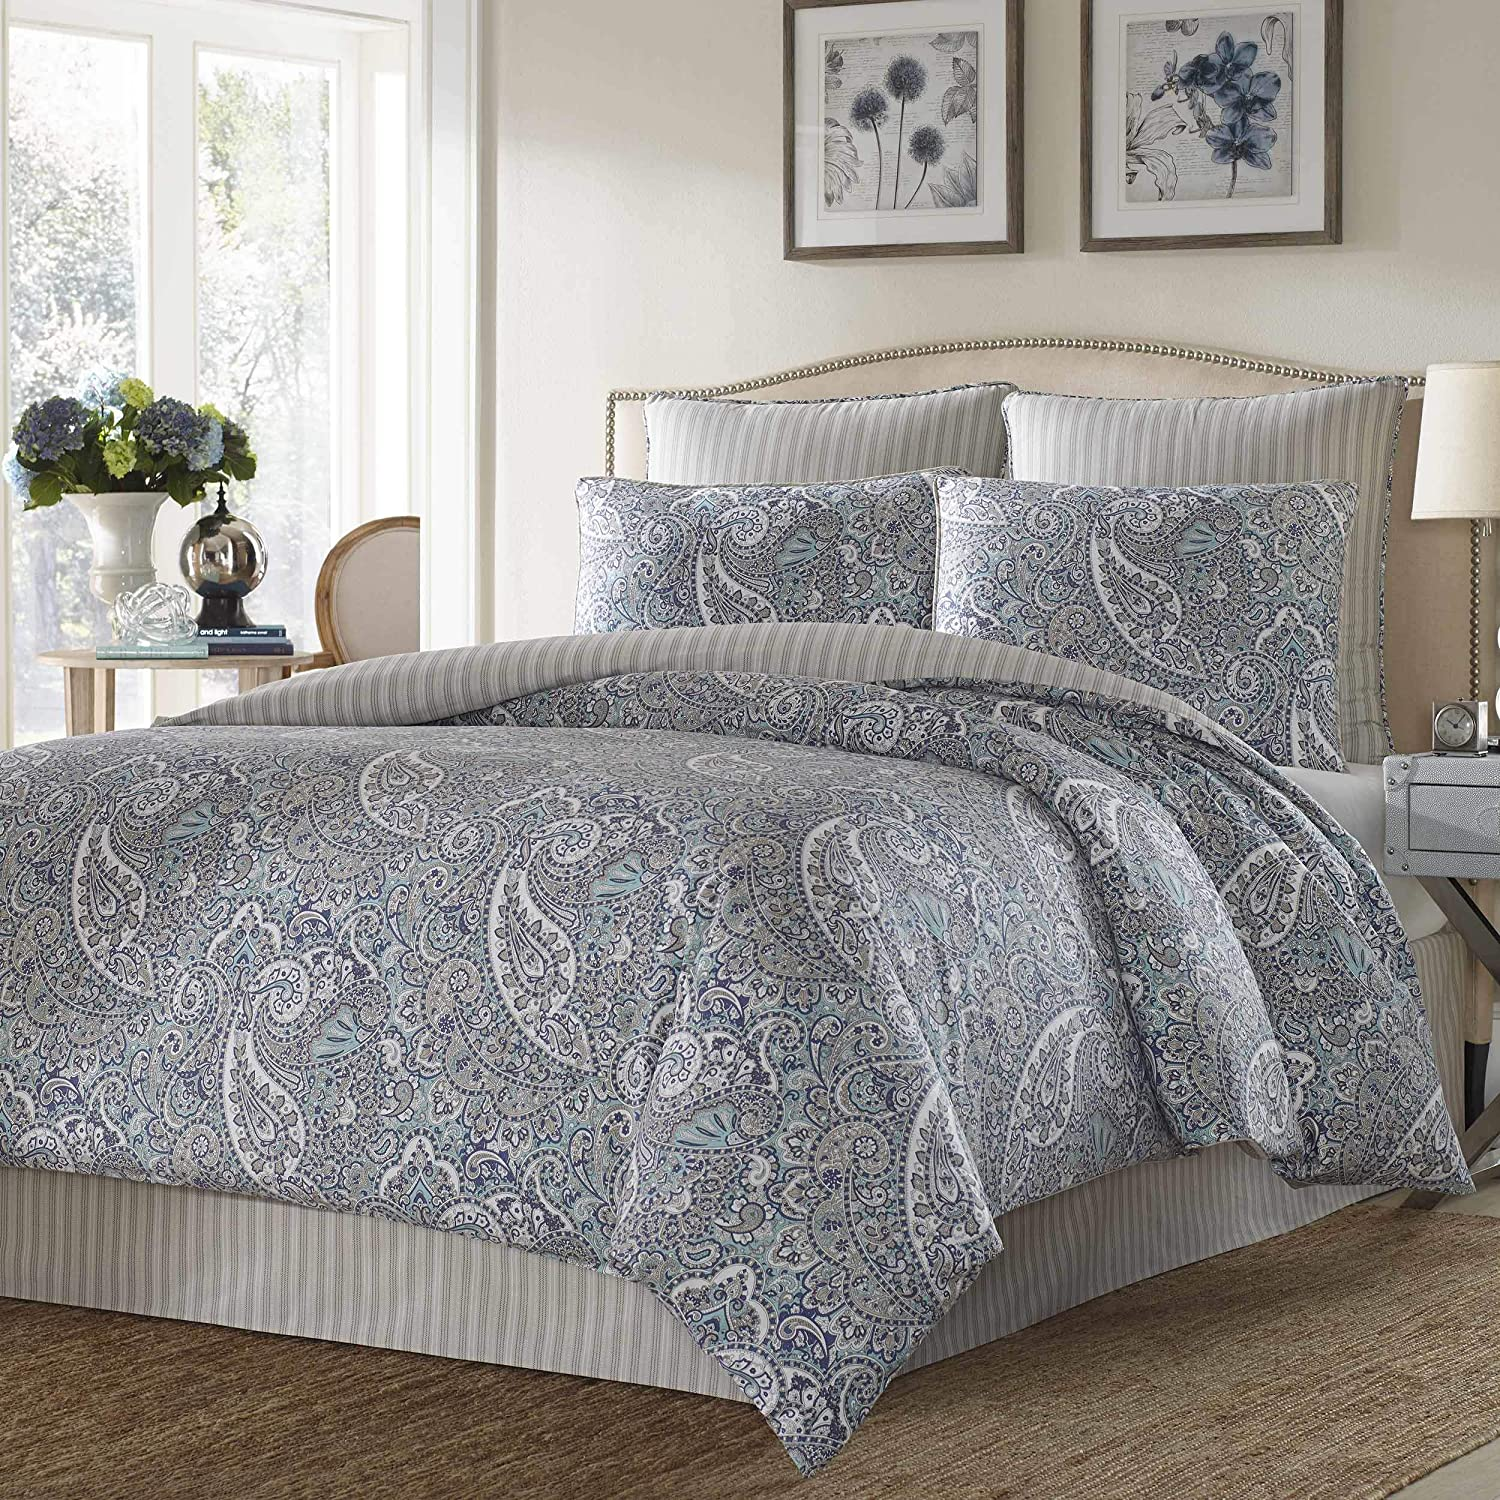 Stone Cottage Cotton Sateen Comforter Set, Full/Queen, Lancaster